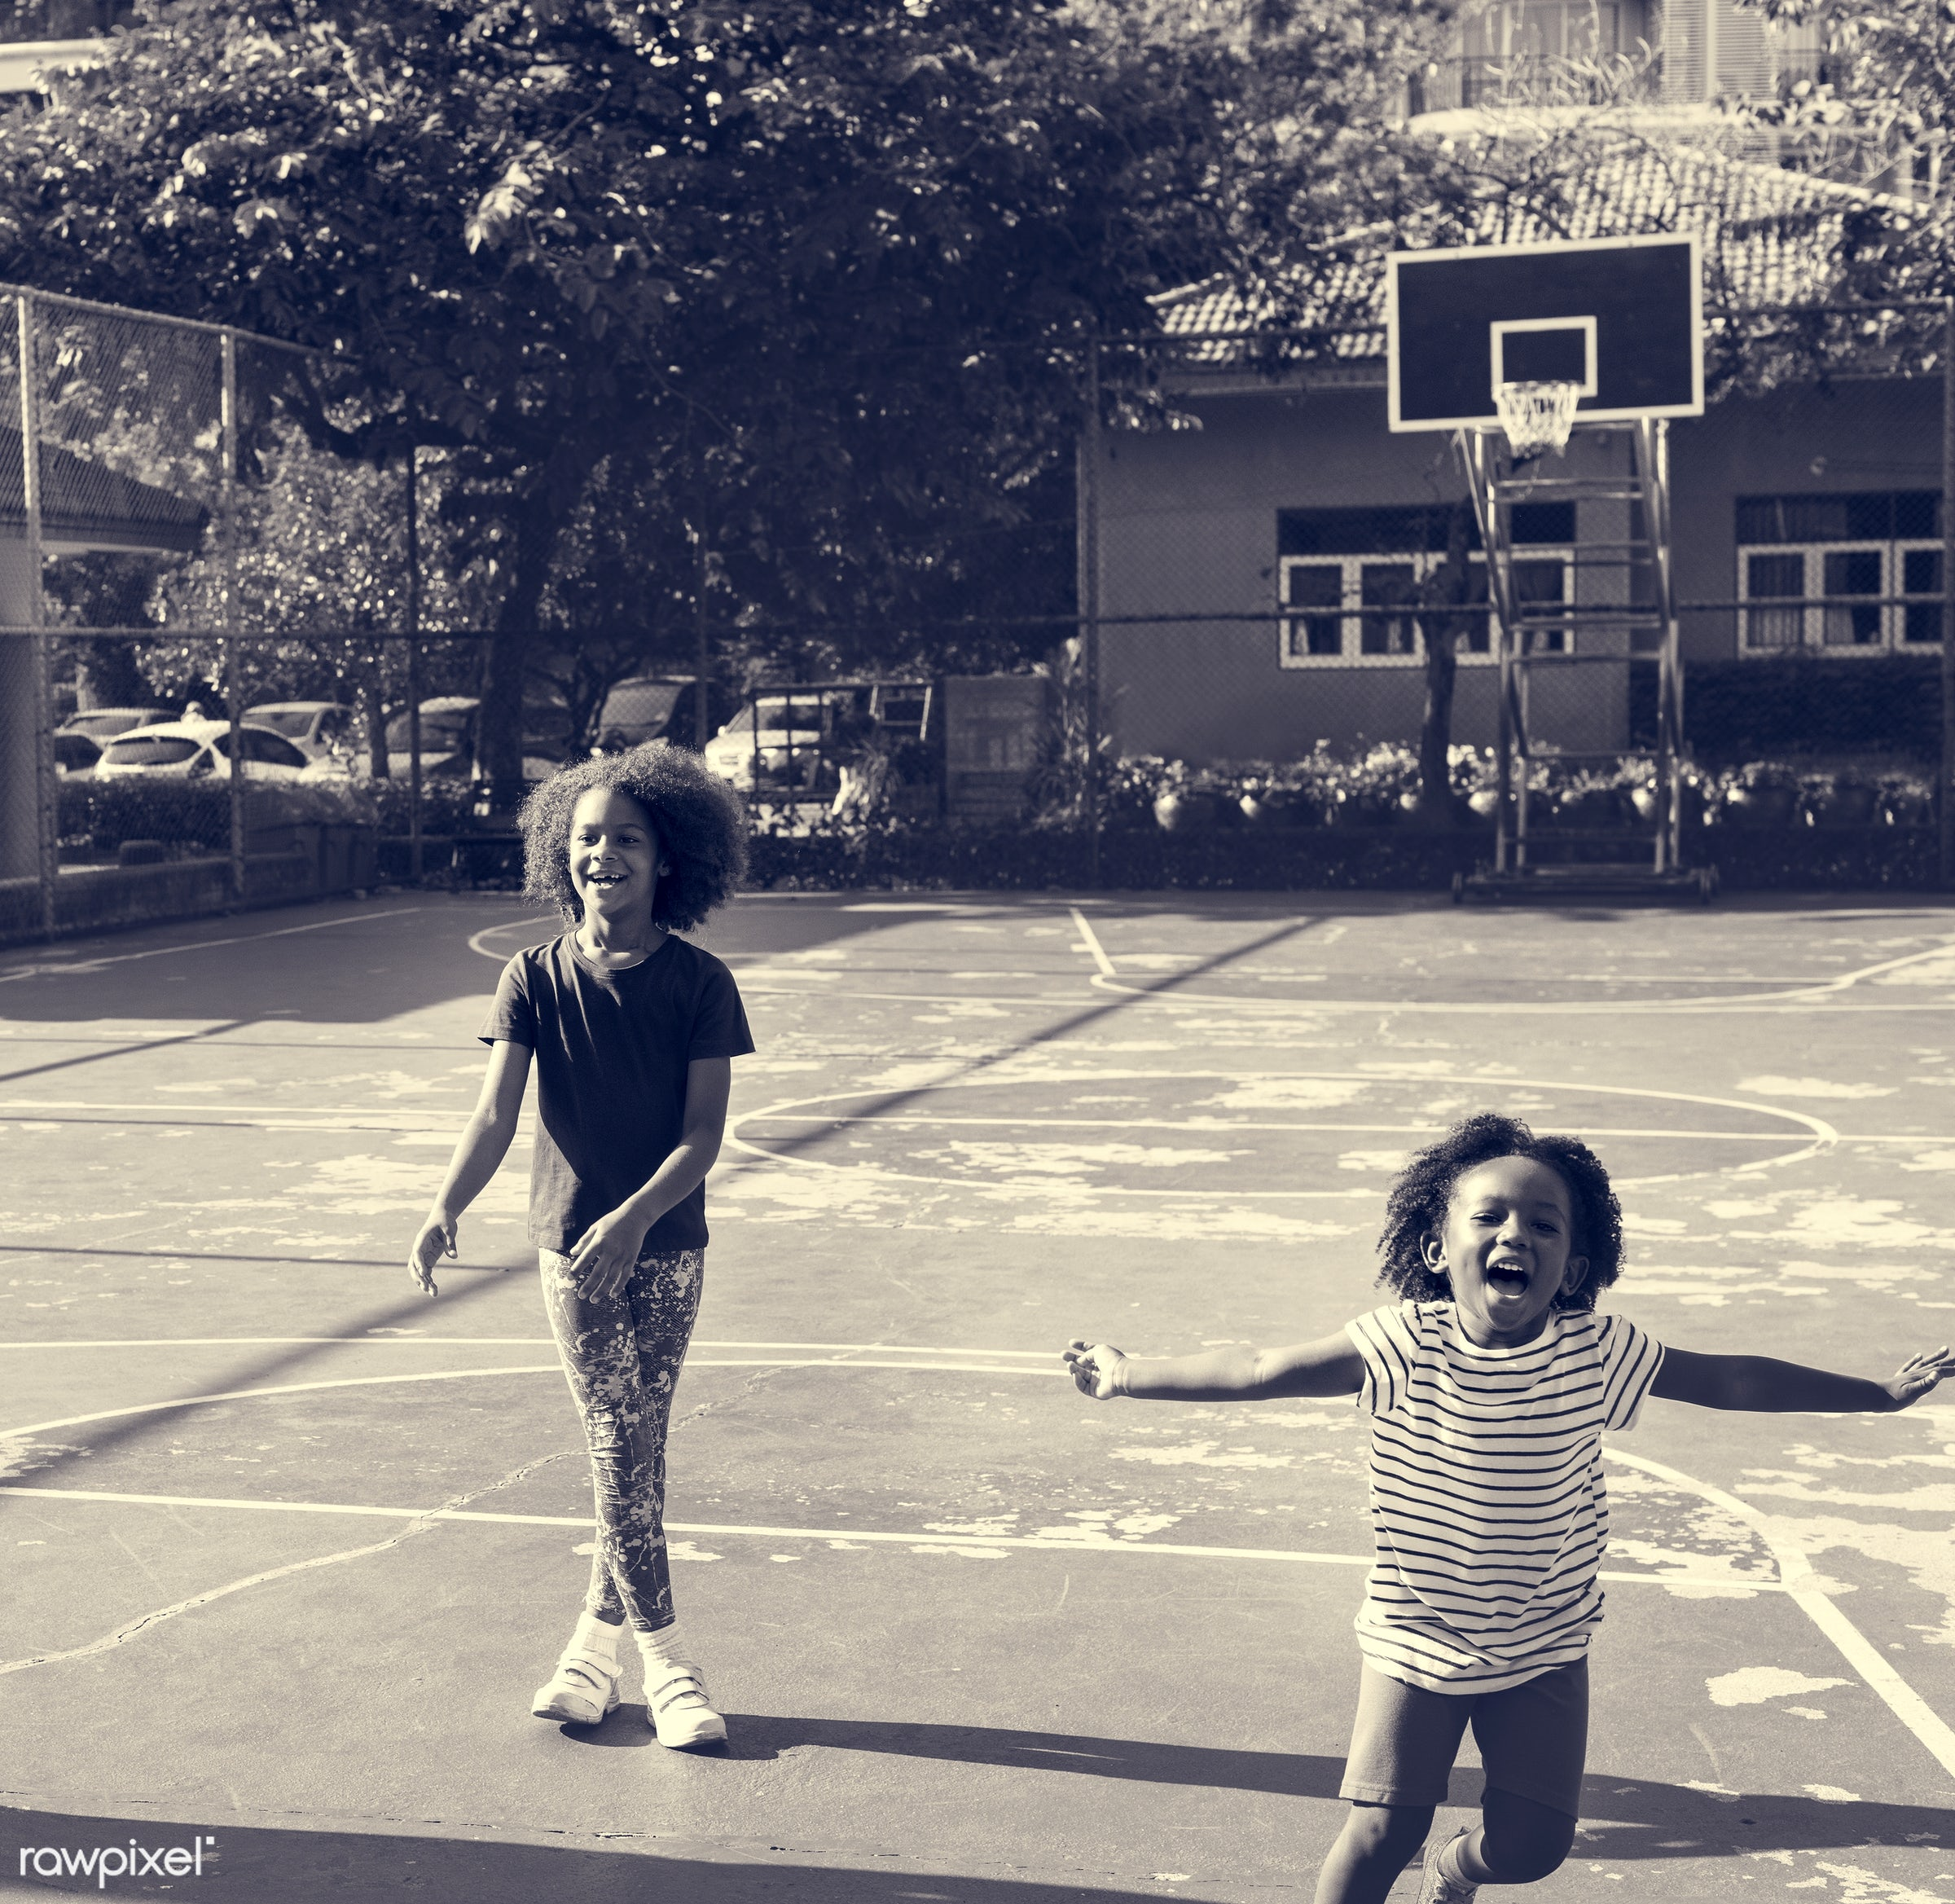 basketball, athletics, african, player, street, exercise, court, recreation, sister, arena, family, activity, athlete, ball...